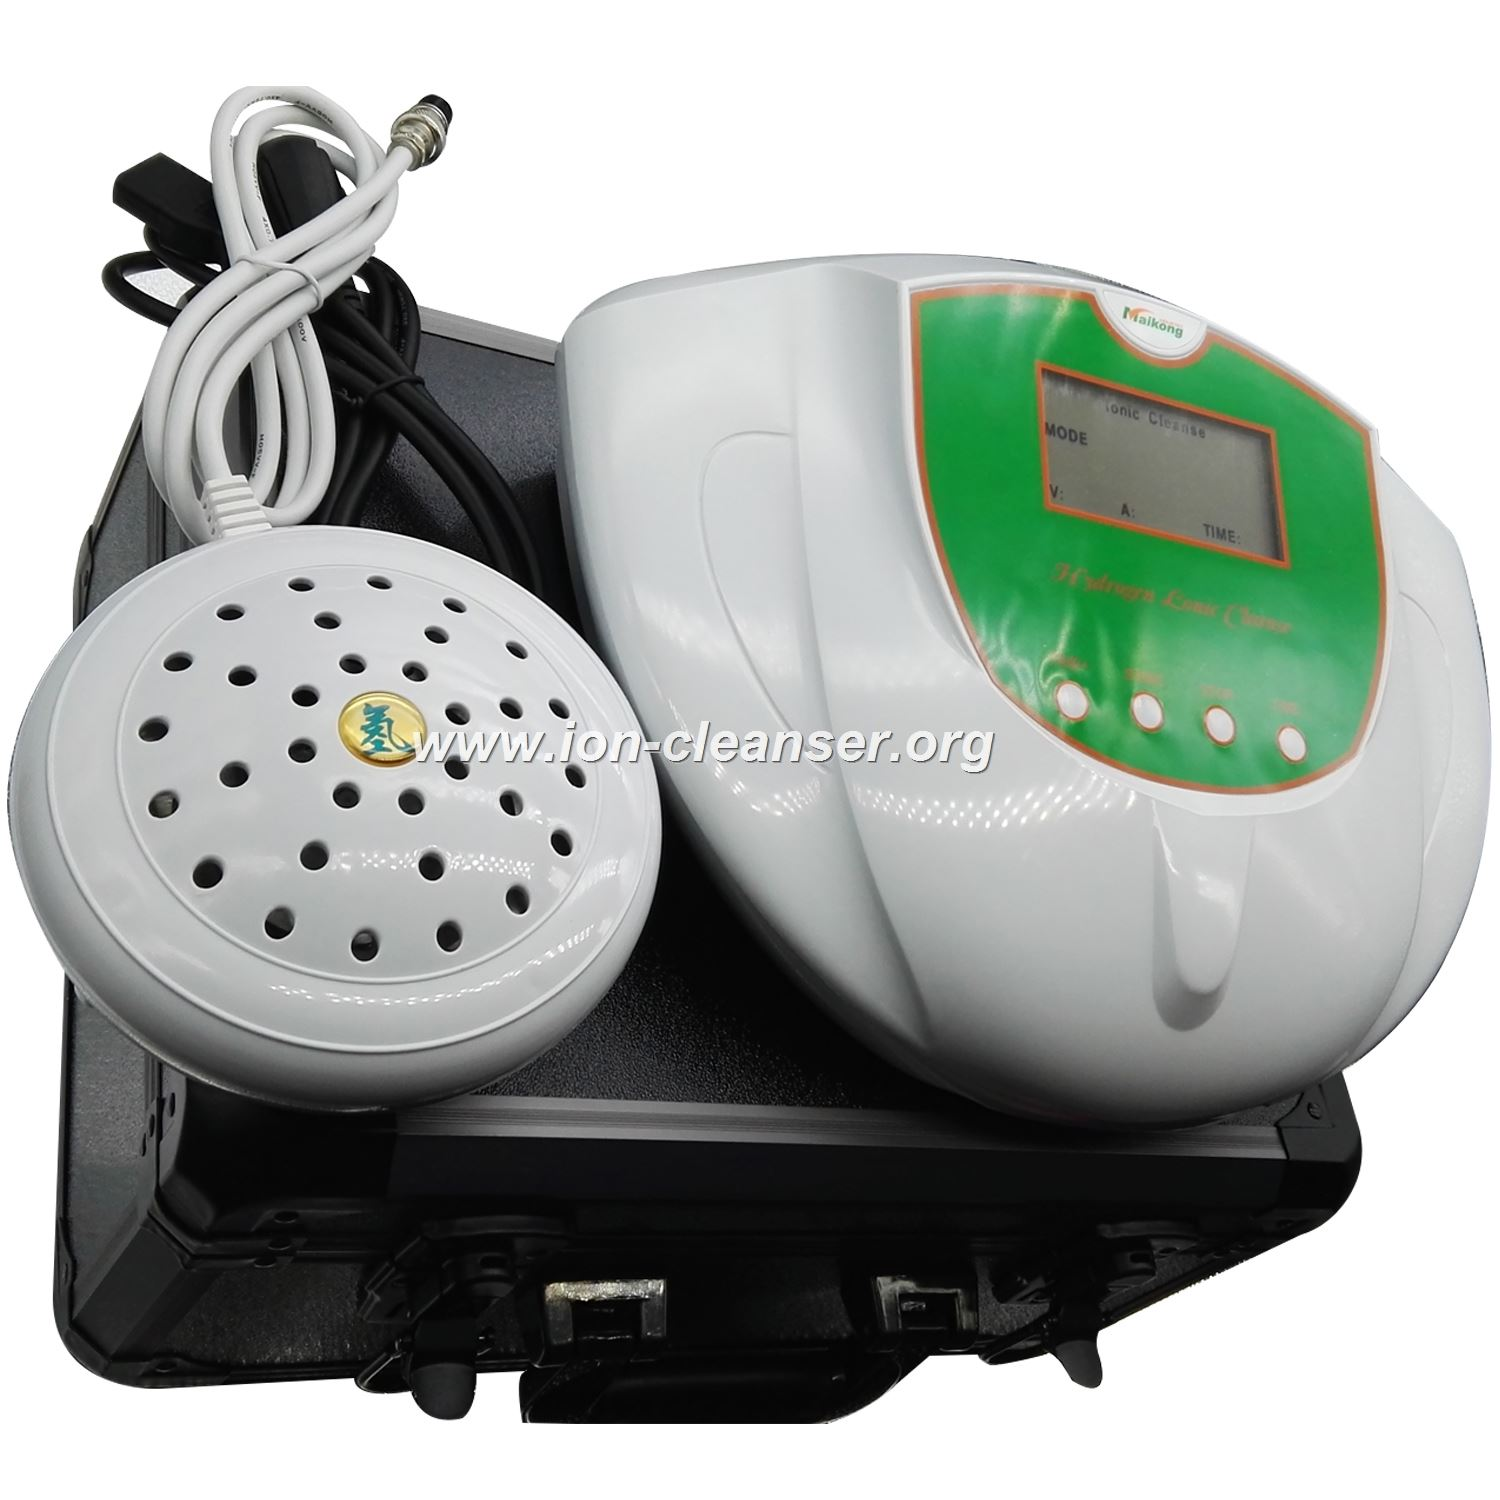 Detox foot machine The Best Device For Foot Detox